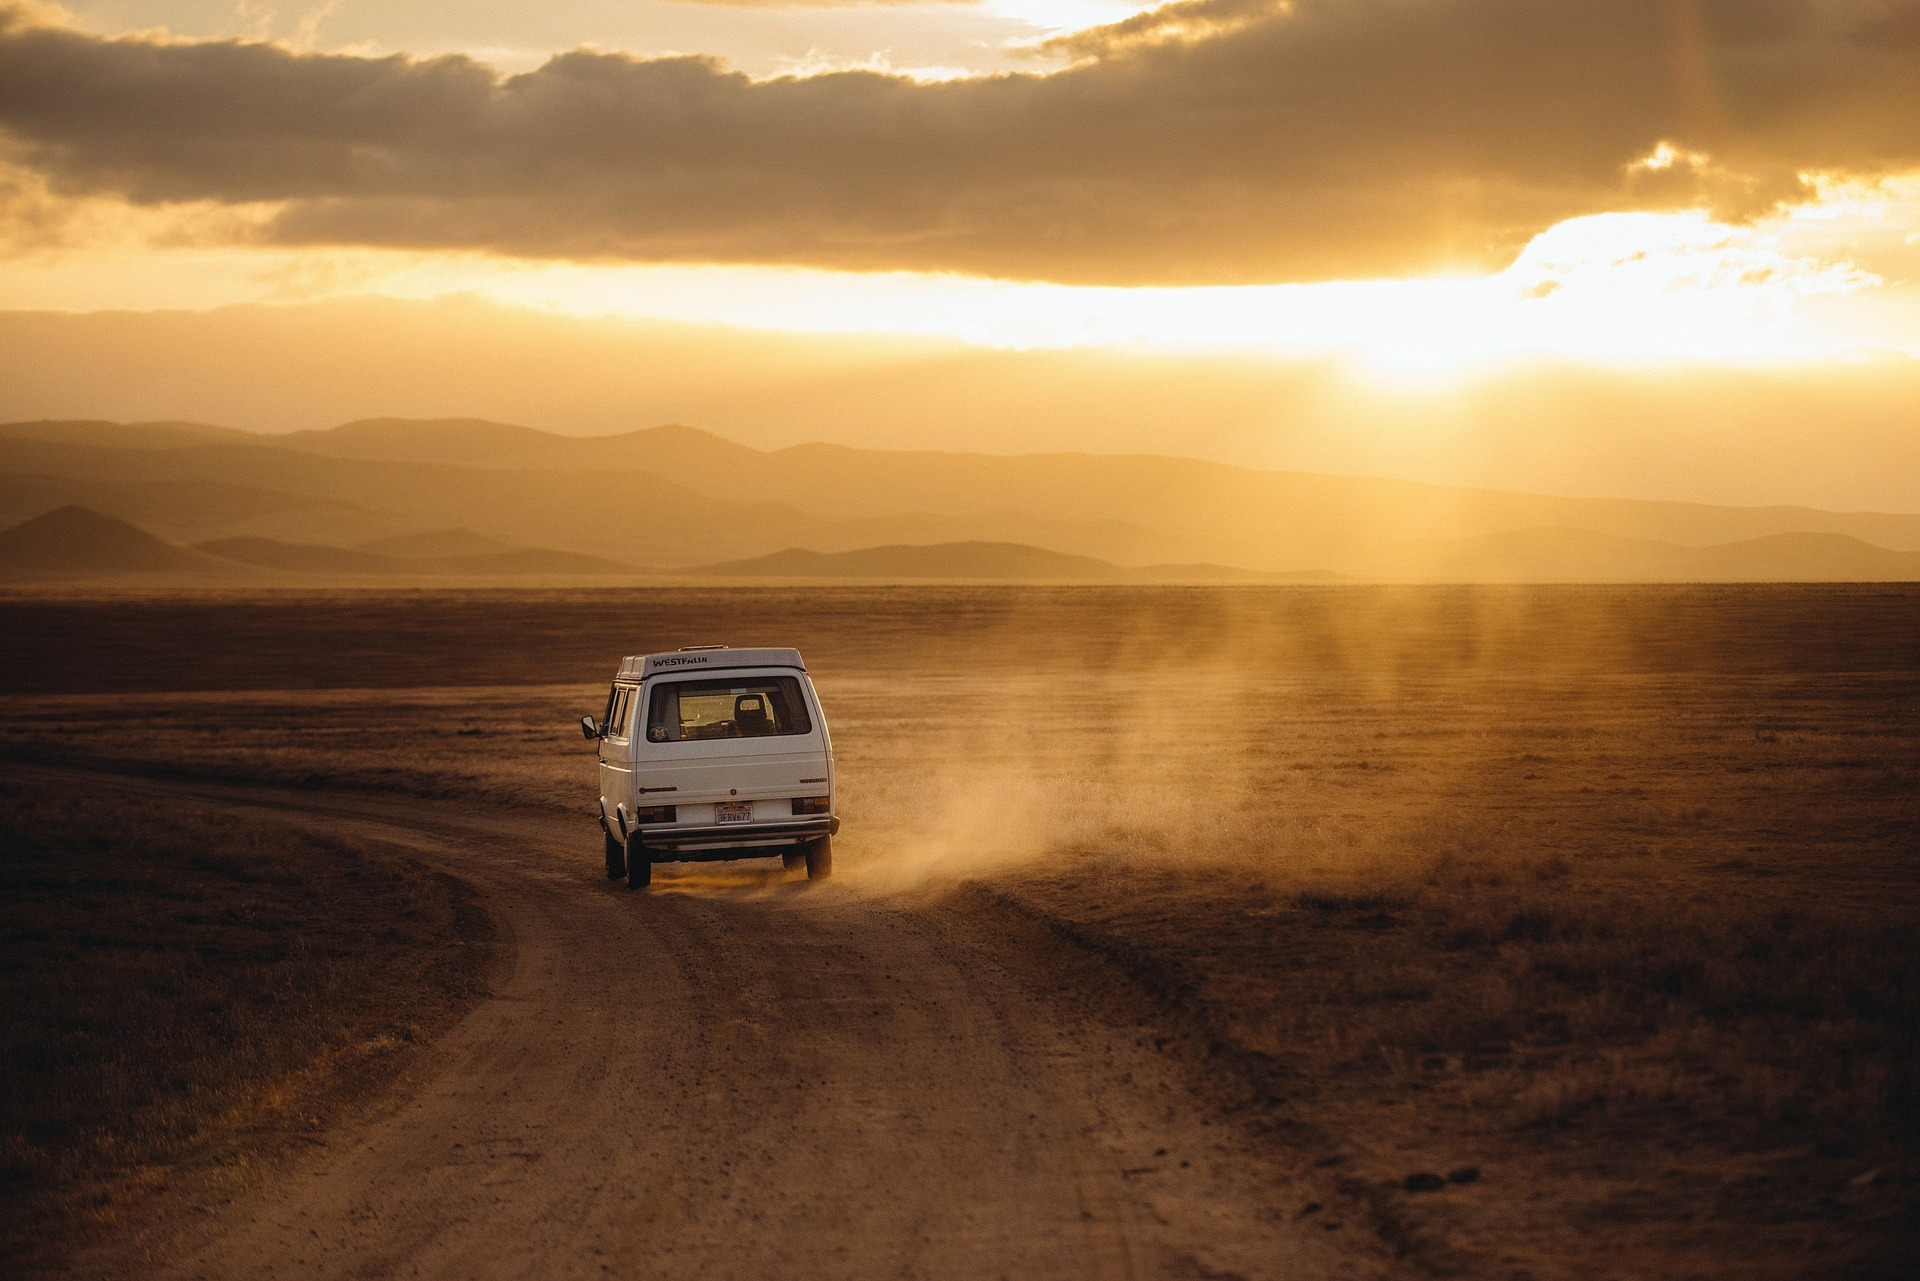 Travel Checklist & Tips For a Long Car Journey - autoevolution